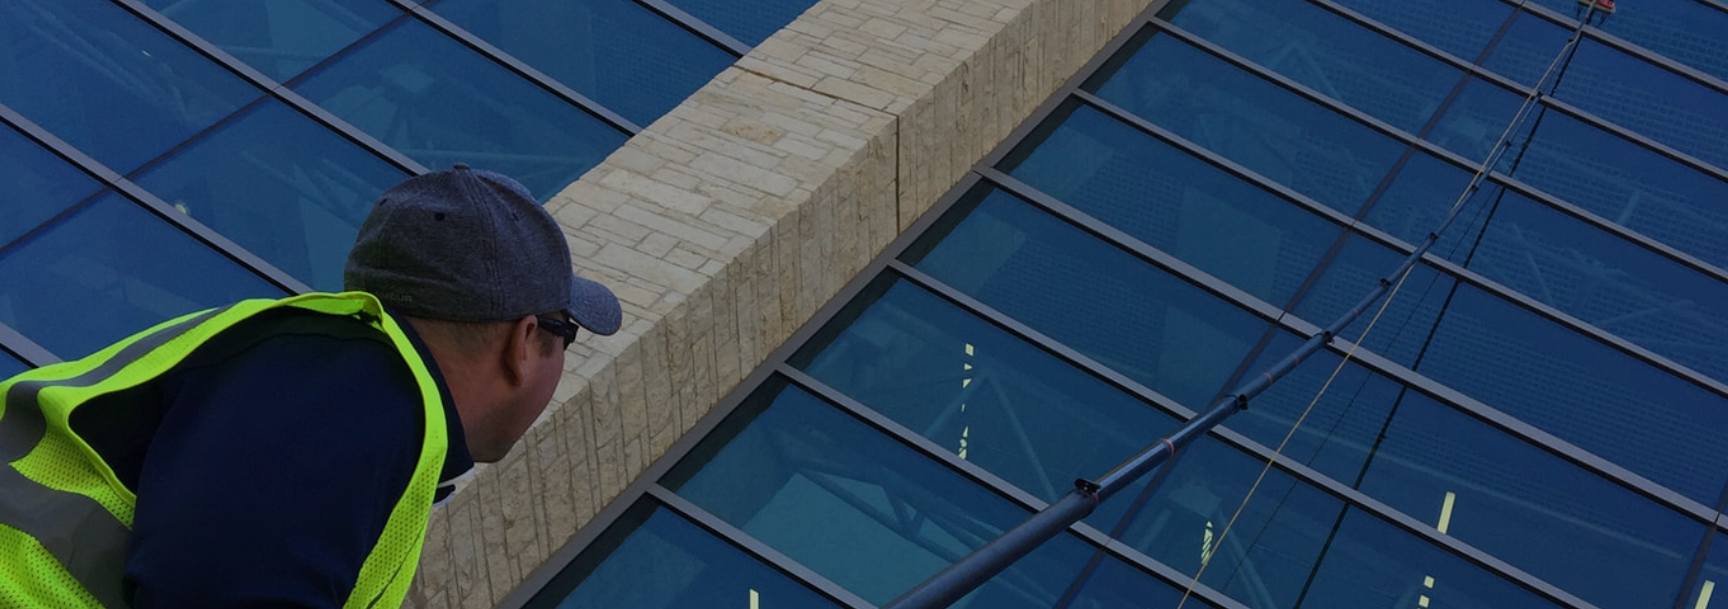 Kansas' Top Rated Local® Window Cleaners Award Winner: O&S Cleaning Solutions